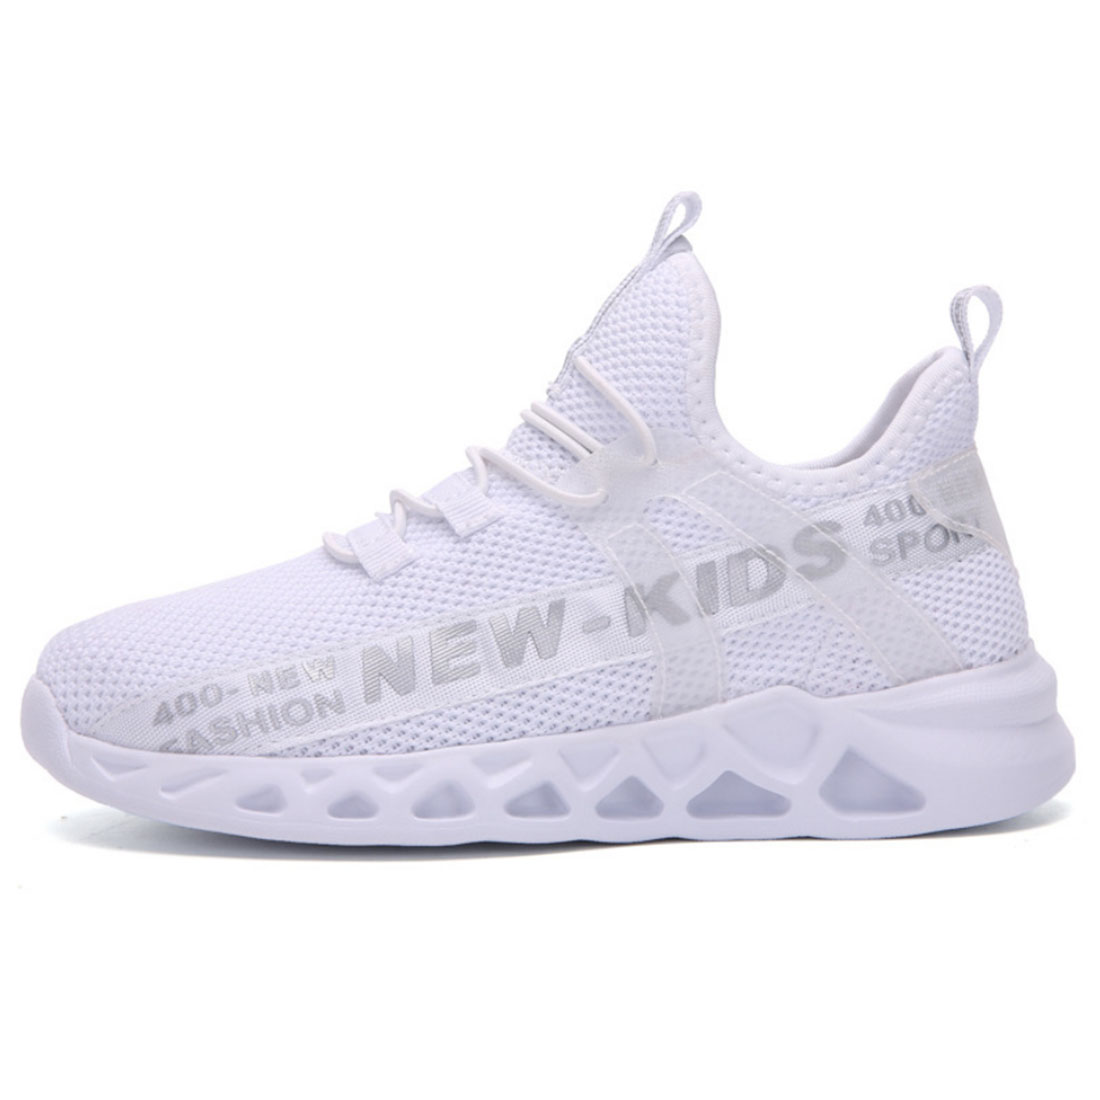 Shoes Kids Boys Girls Casual Mesh Sneakers Breathable Soft Soled Running Sports Shoes toddler boy shoes  boys sneakers title=